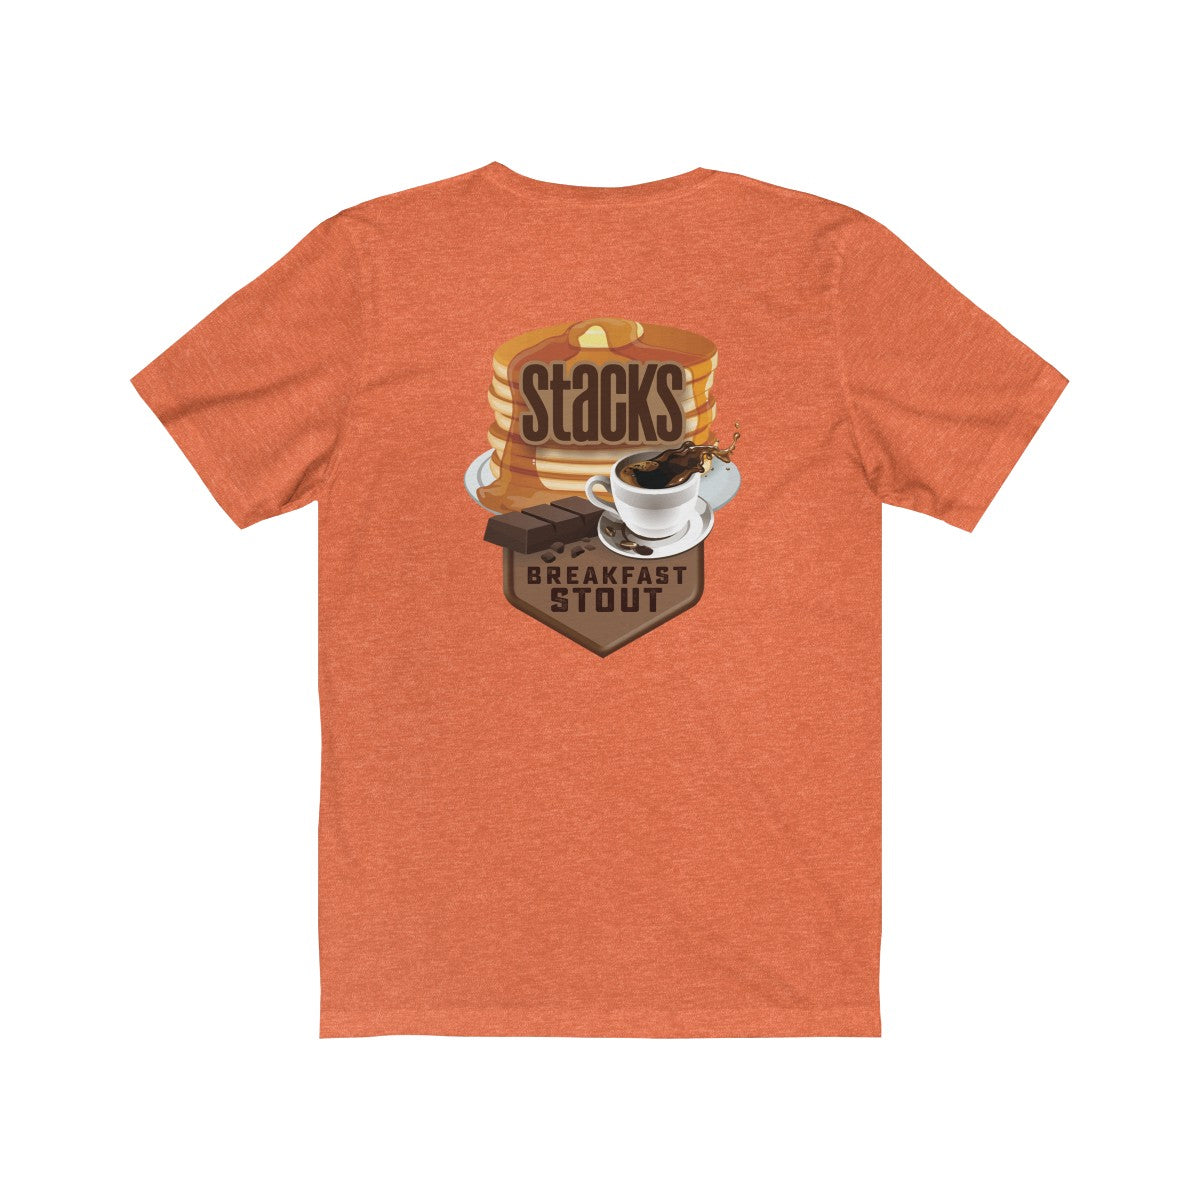 Full Tilt - Stacks T-Shirt